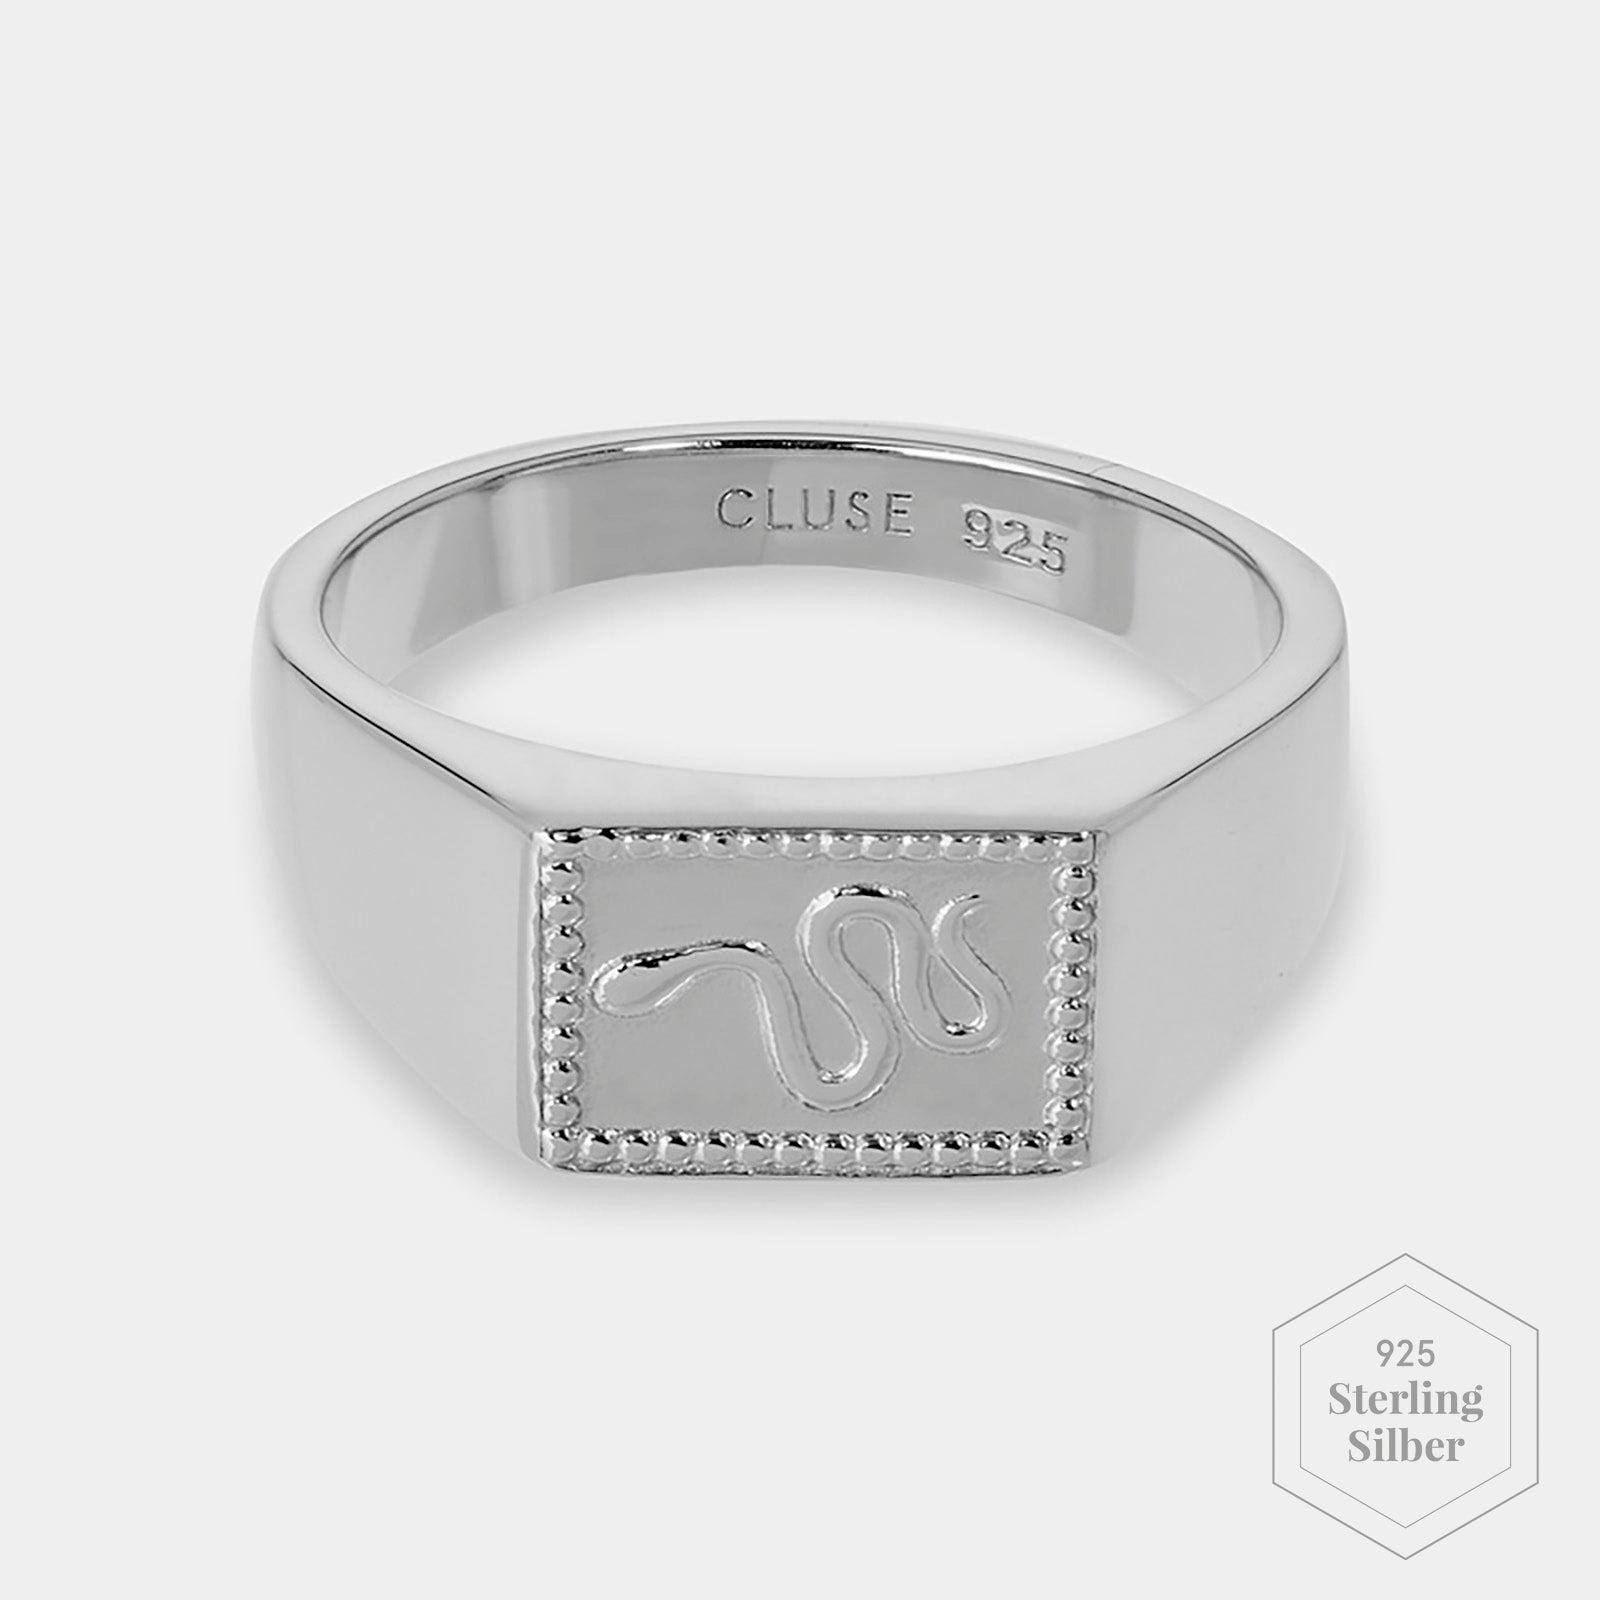 CLUSE Force Tropicale Silver Signet Rectangular Ring 52 CLJ42012-52 - Ringgröße 52